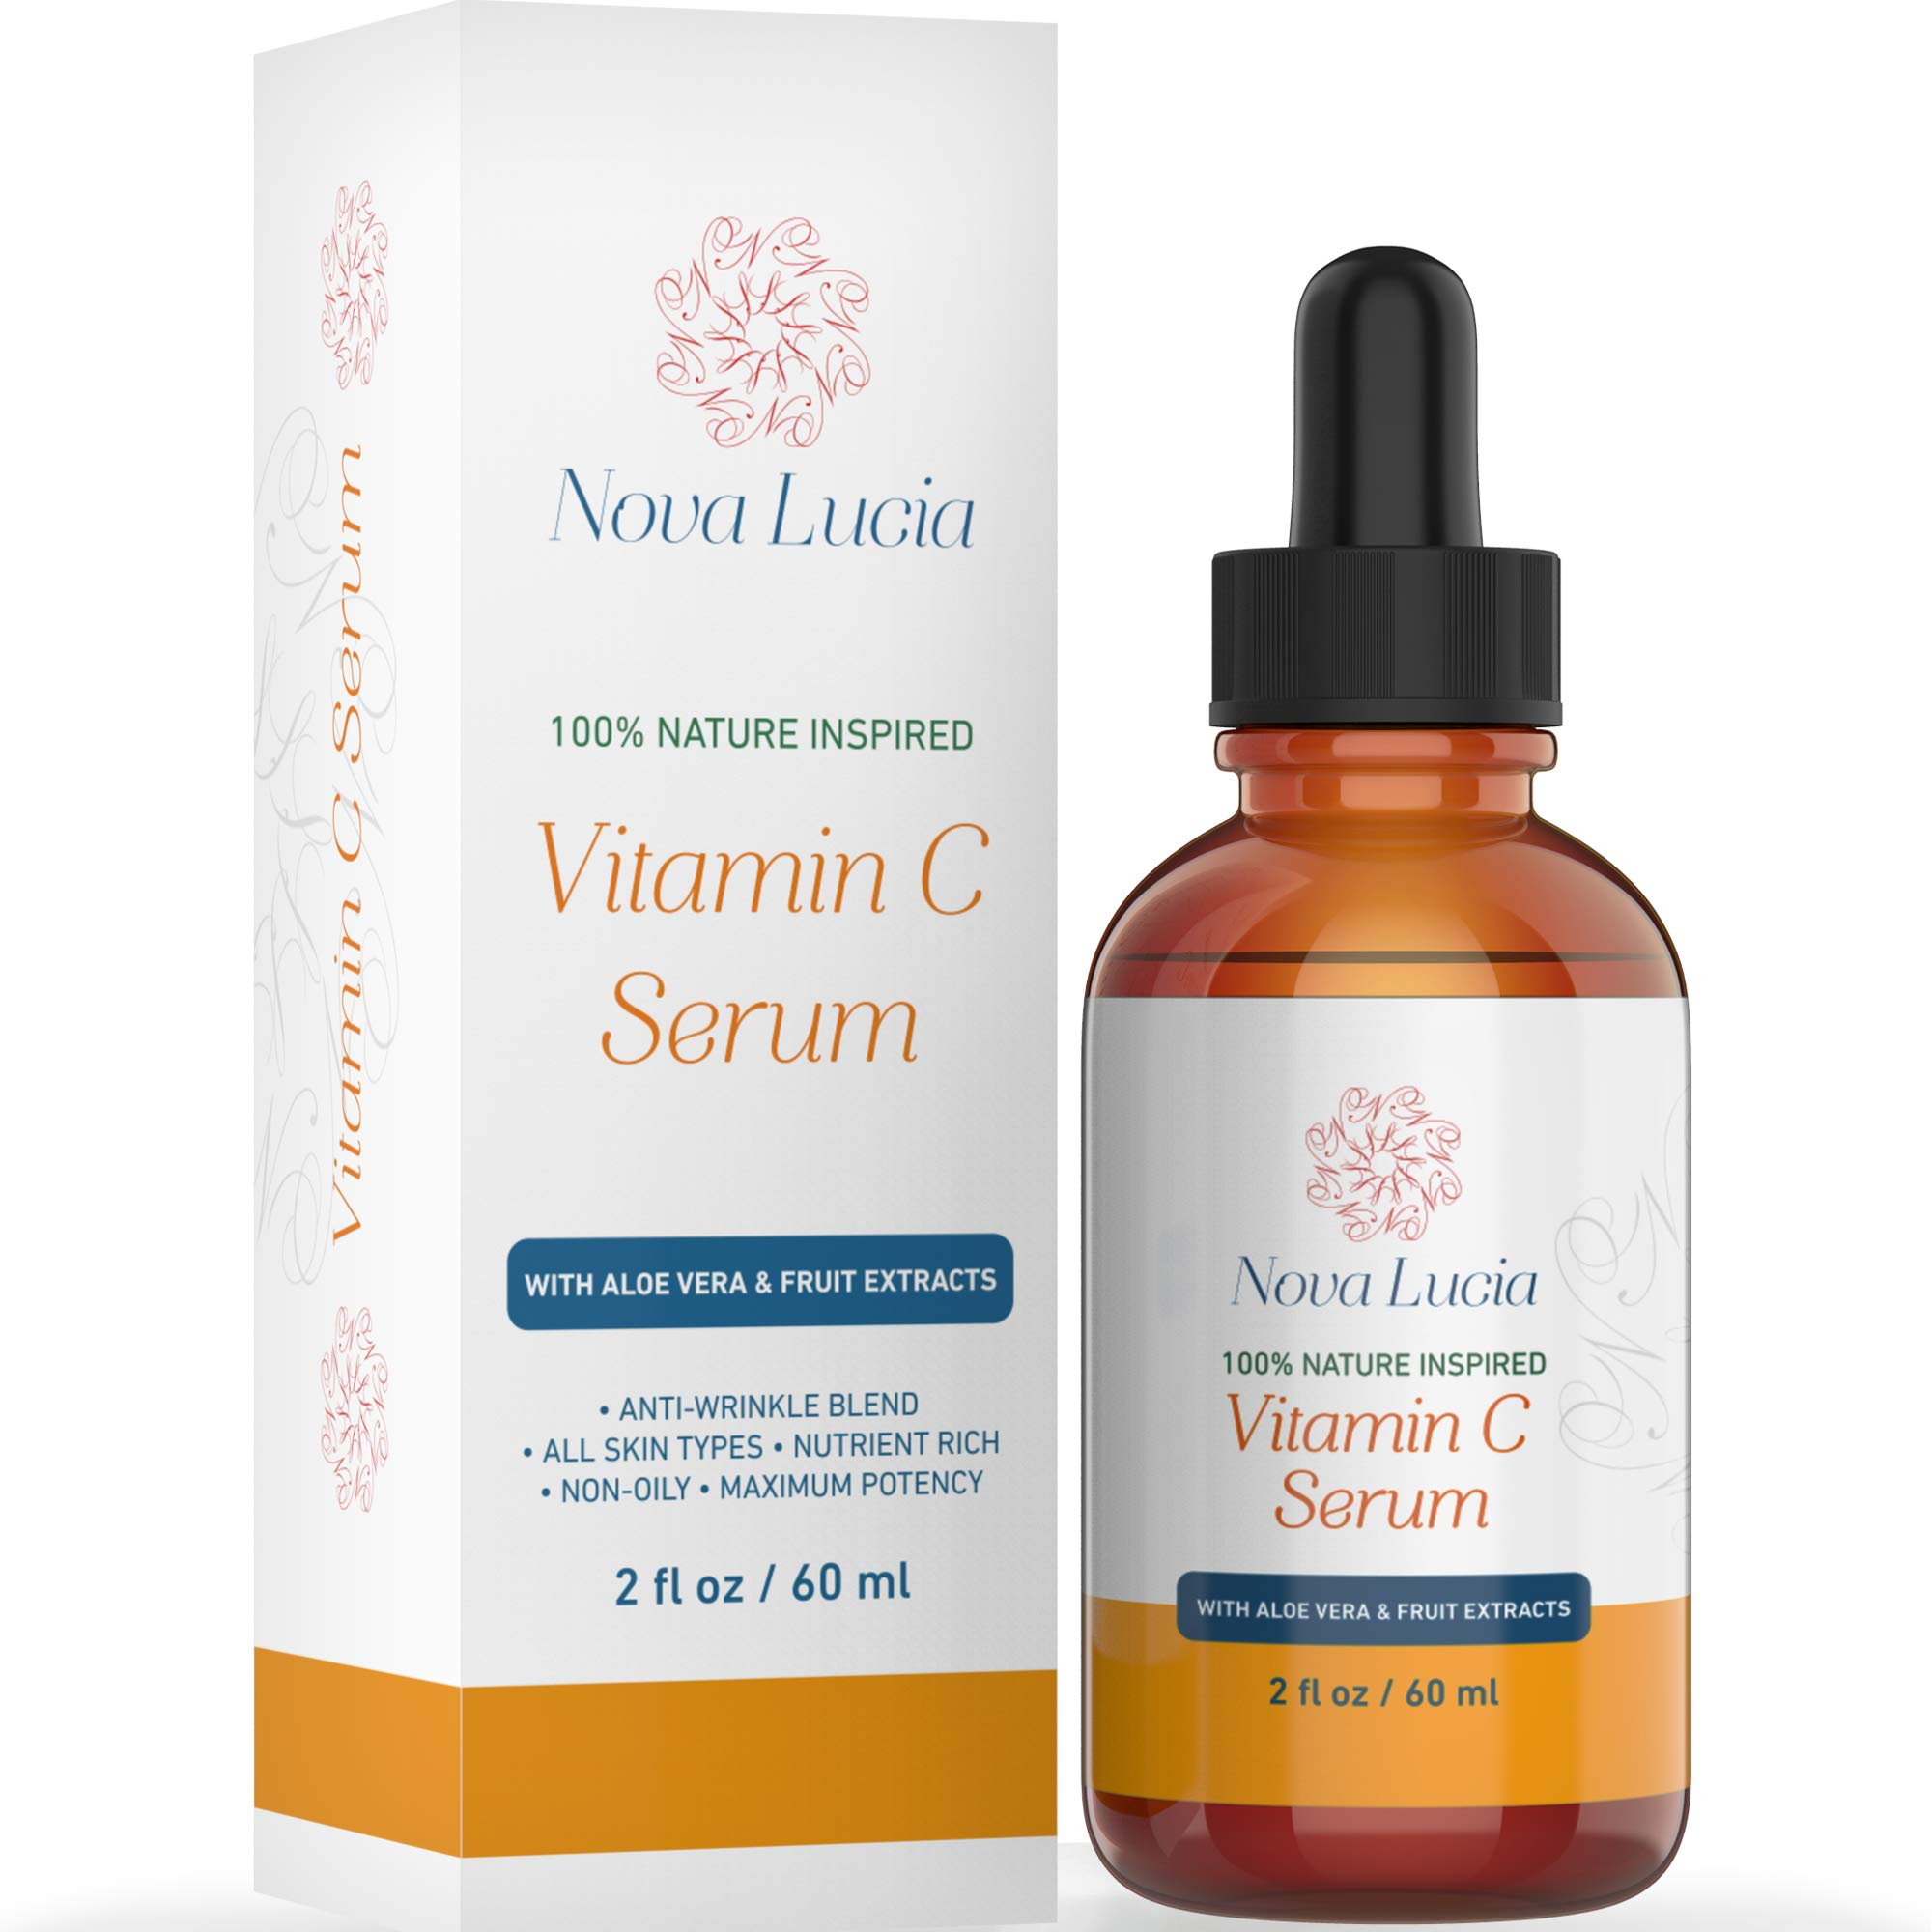 Vitamin C Serum For Face Aloe Vera & Fruit Extracts Acne Spot Treatment Sun Spot Corrector For Face Under Eye Treatment Toner For Face Compare With Under Eye Cream Anti Aging Serum 2 oz